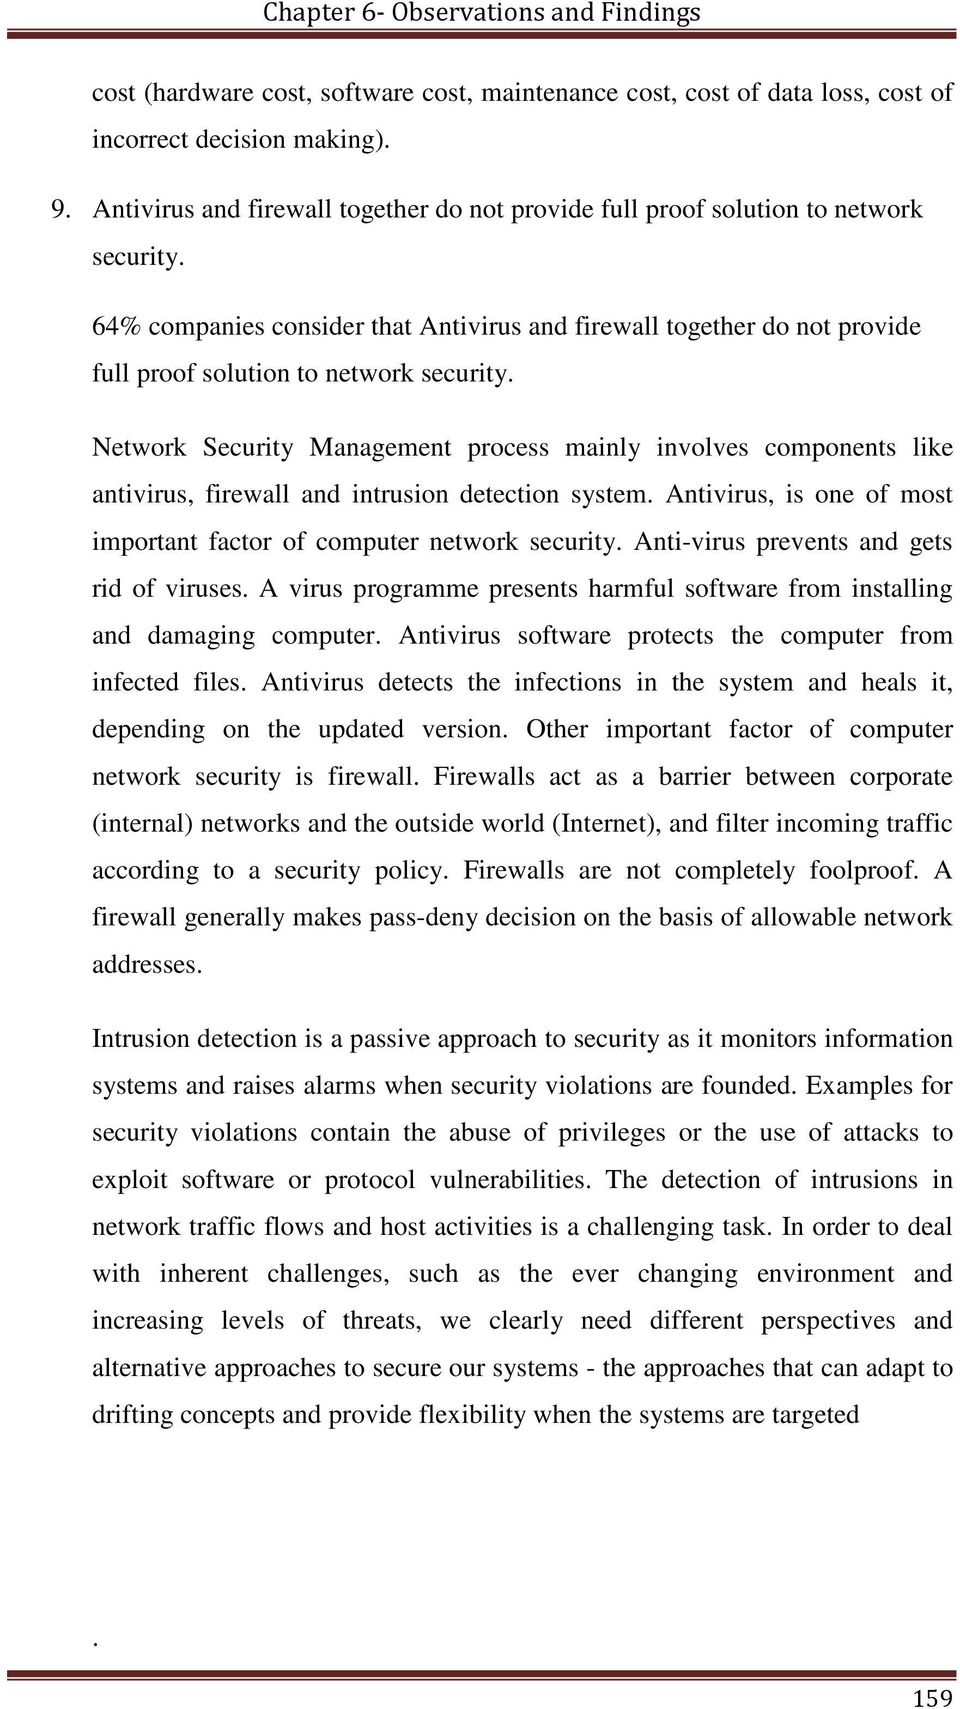 Network Security Management process mainly involves components like antivirus, firewall and intrusion detection system. Antivirus, is one of most important factor of computer network security.